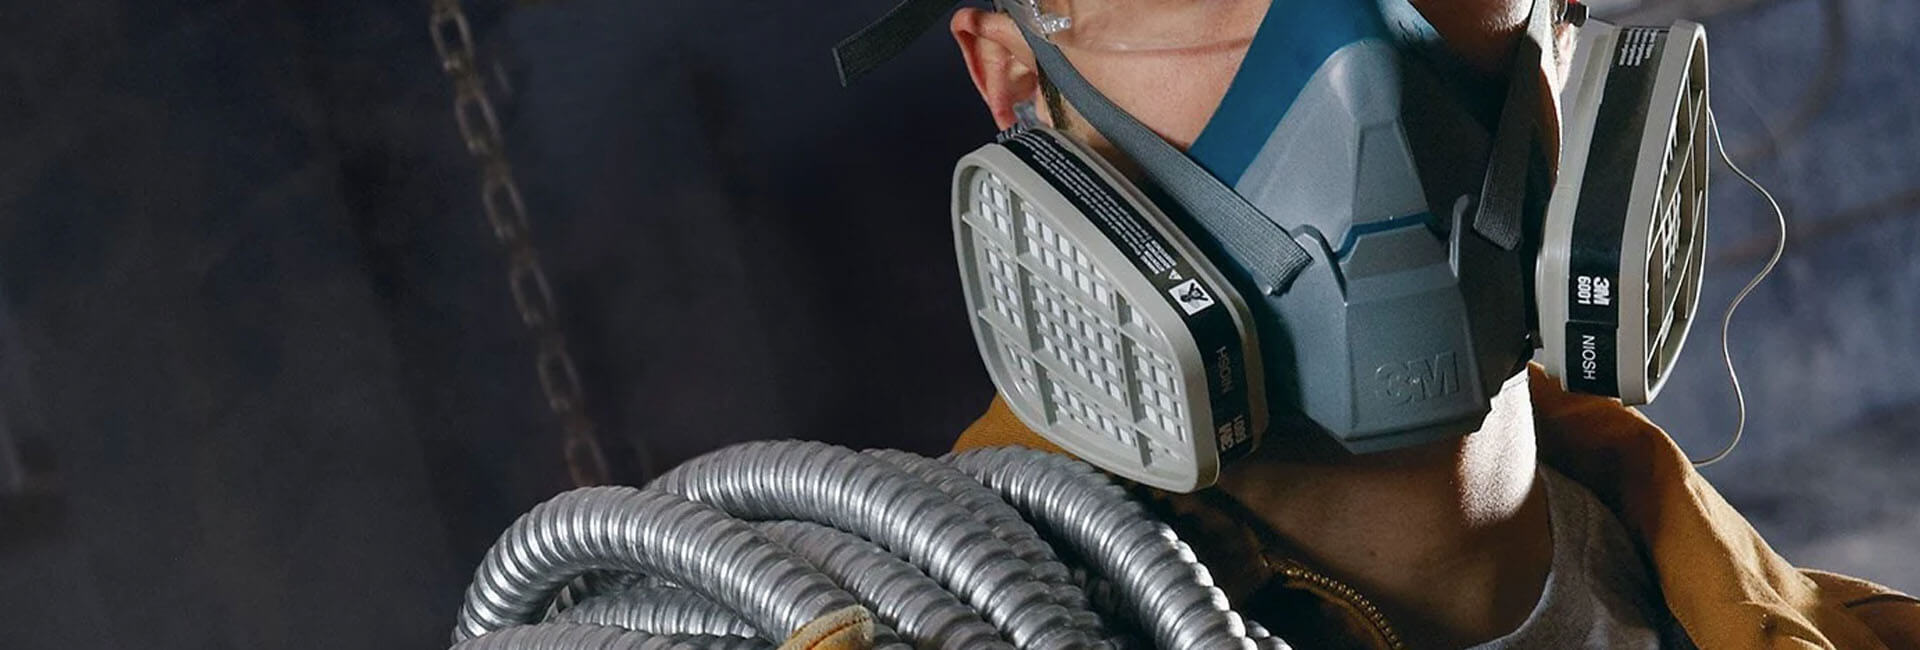 3M respirator promotion - upgrade your gear